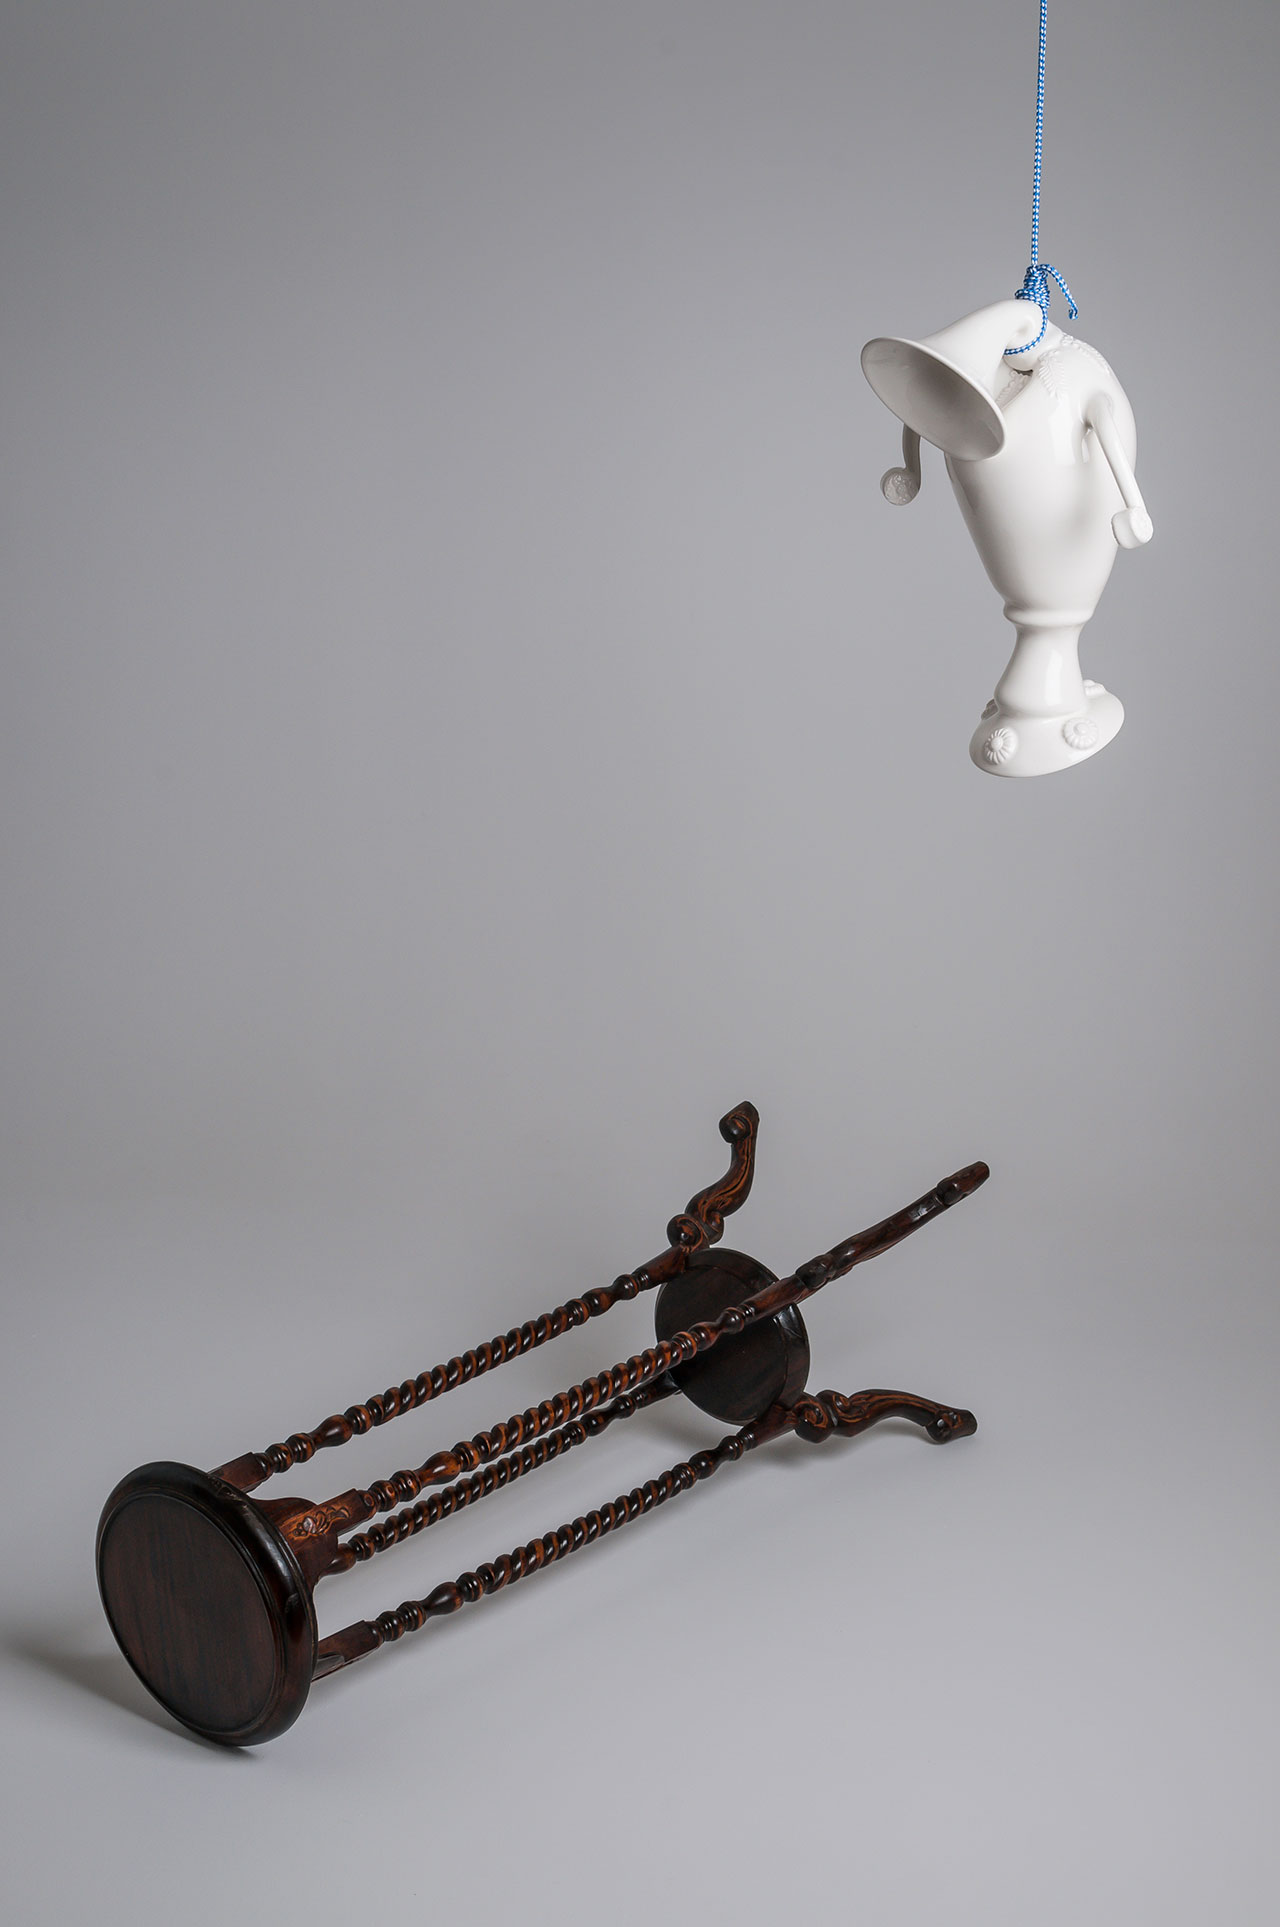 Craste Laurent, La fin d'une potiche I, 2012. Porcelain, glaze, nylon rope, pedestal. Edition 1/5: Vase : 40 x 23.5 x 29 cm; pedestal : 101 x 32 x 32 cm. Permanent collection of the Montreal Museum of Fine Arts.